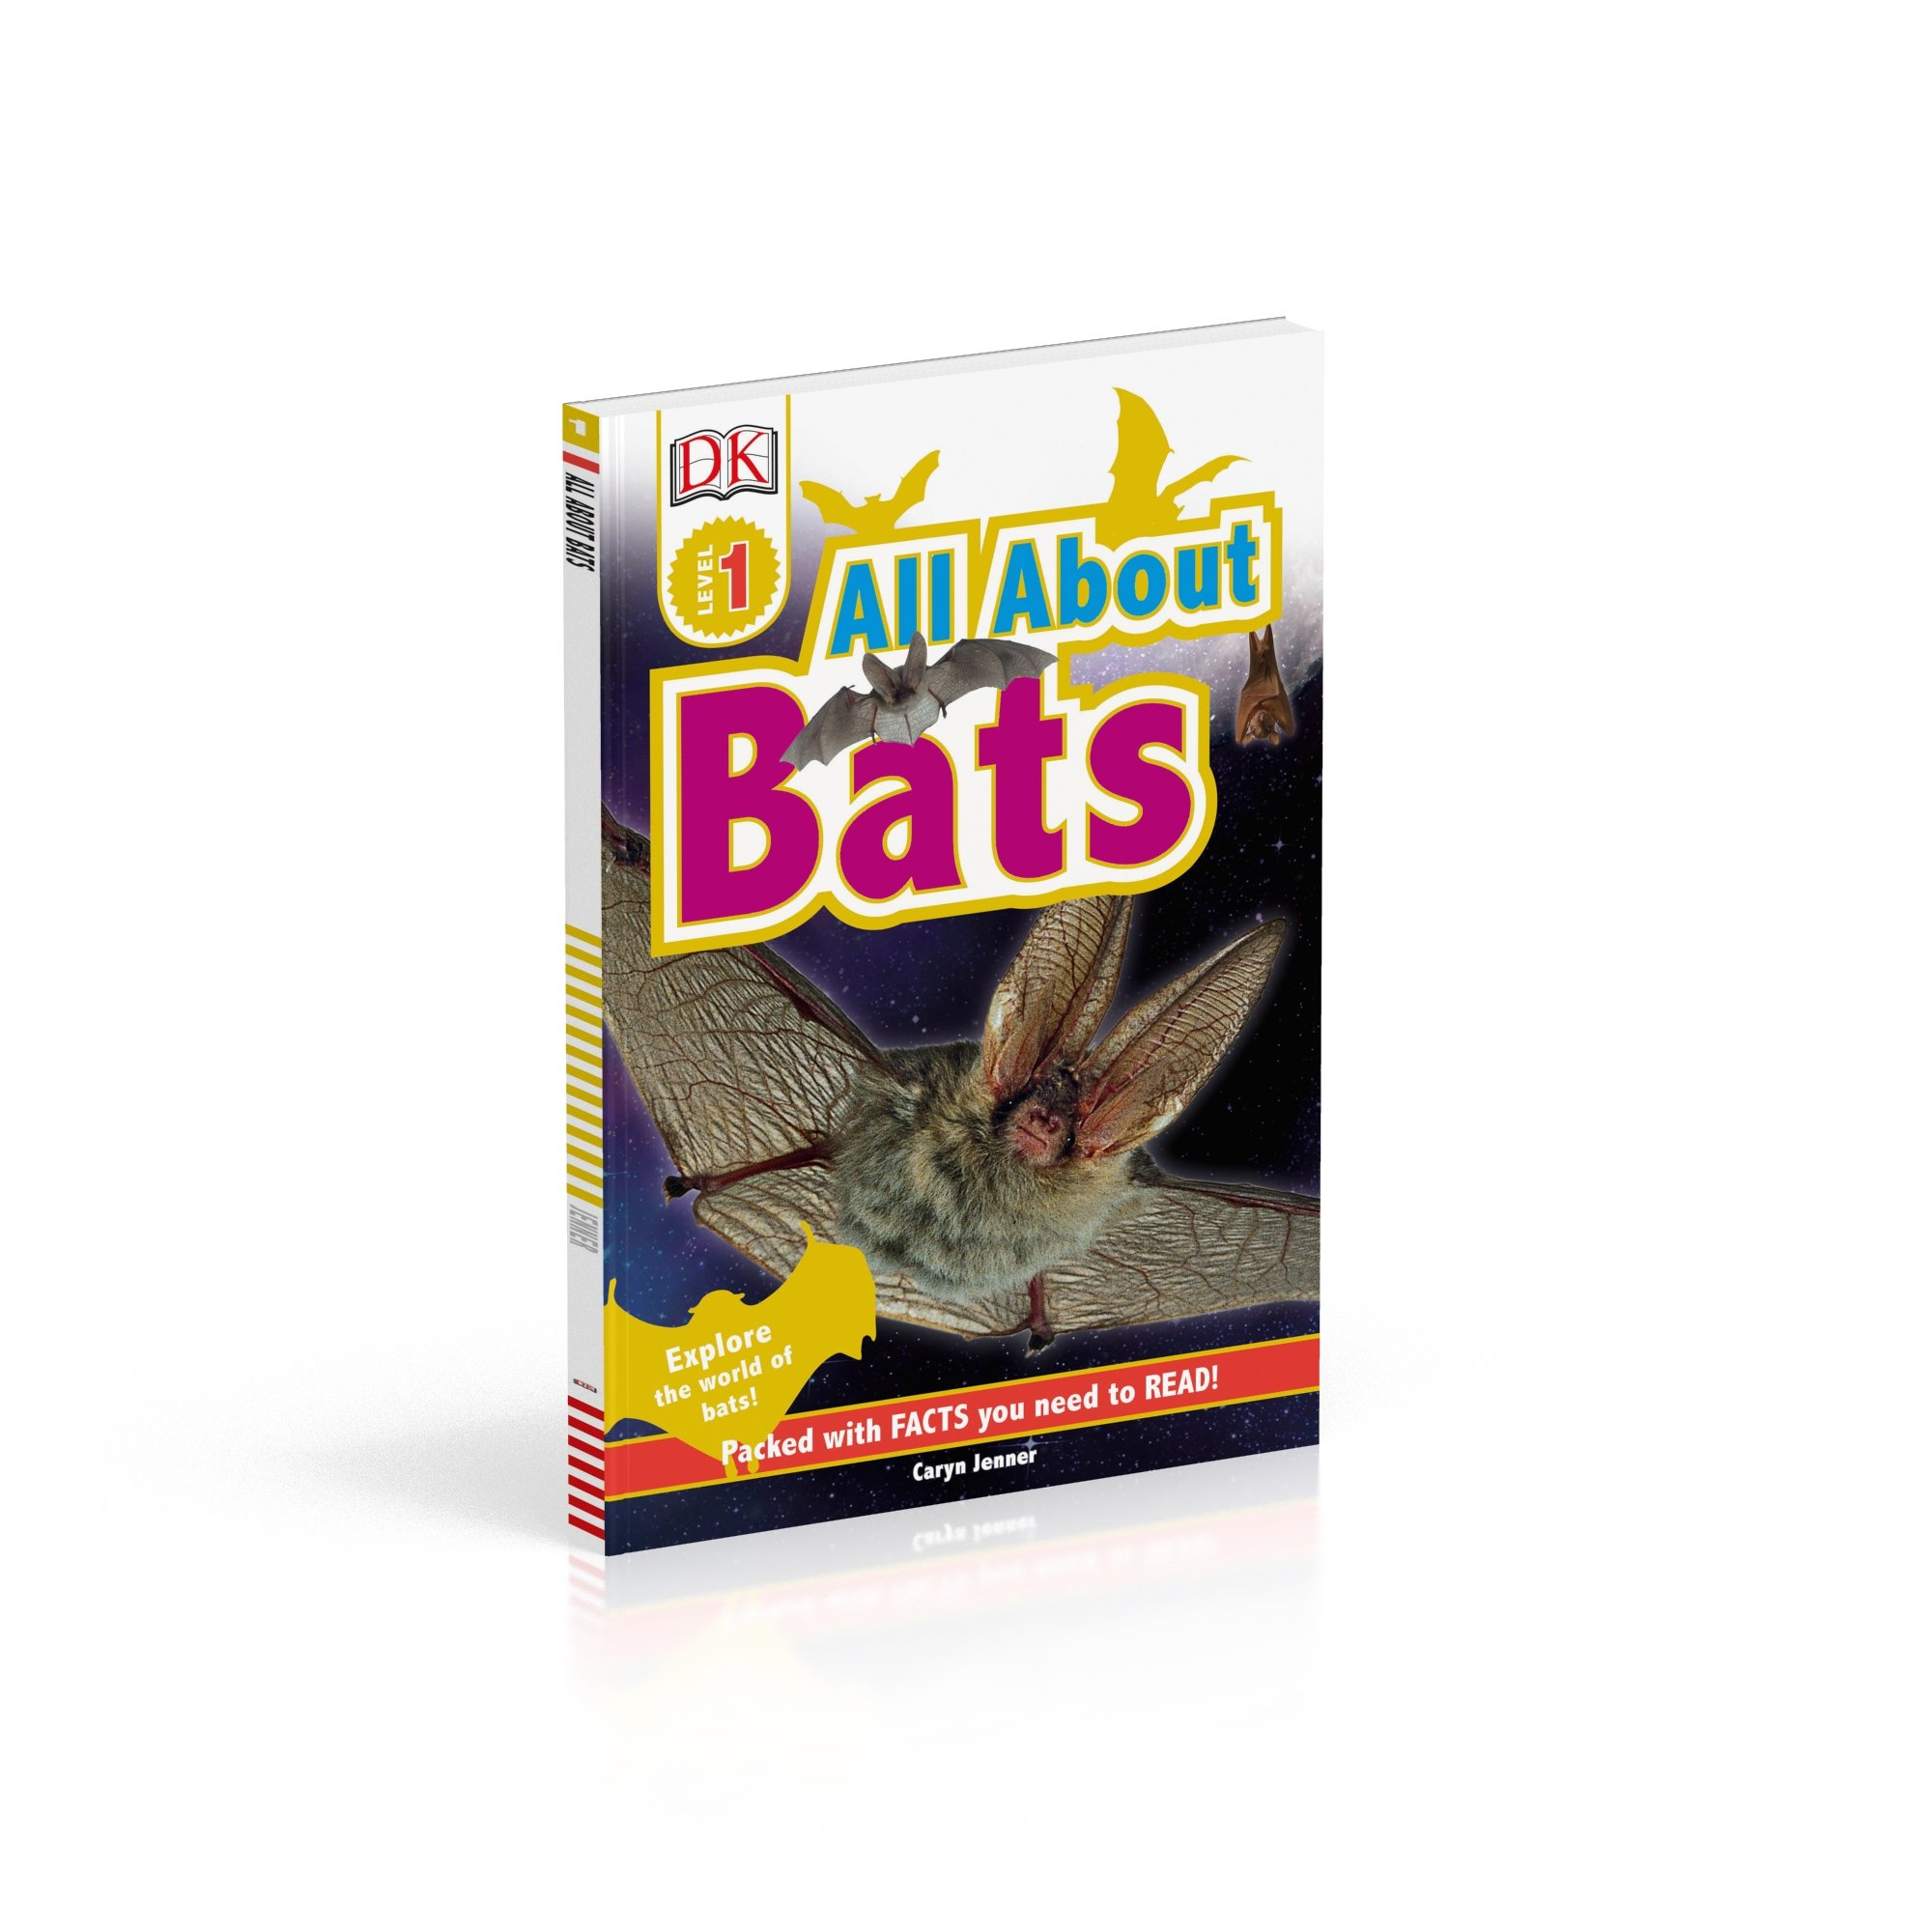 Amazon.com: DK Readers L1: All About Bats: Explore the World of Bats! (DK  Readers Level 1) (9781465457462): Caryn Jenner: Books